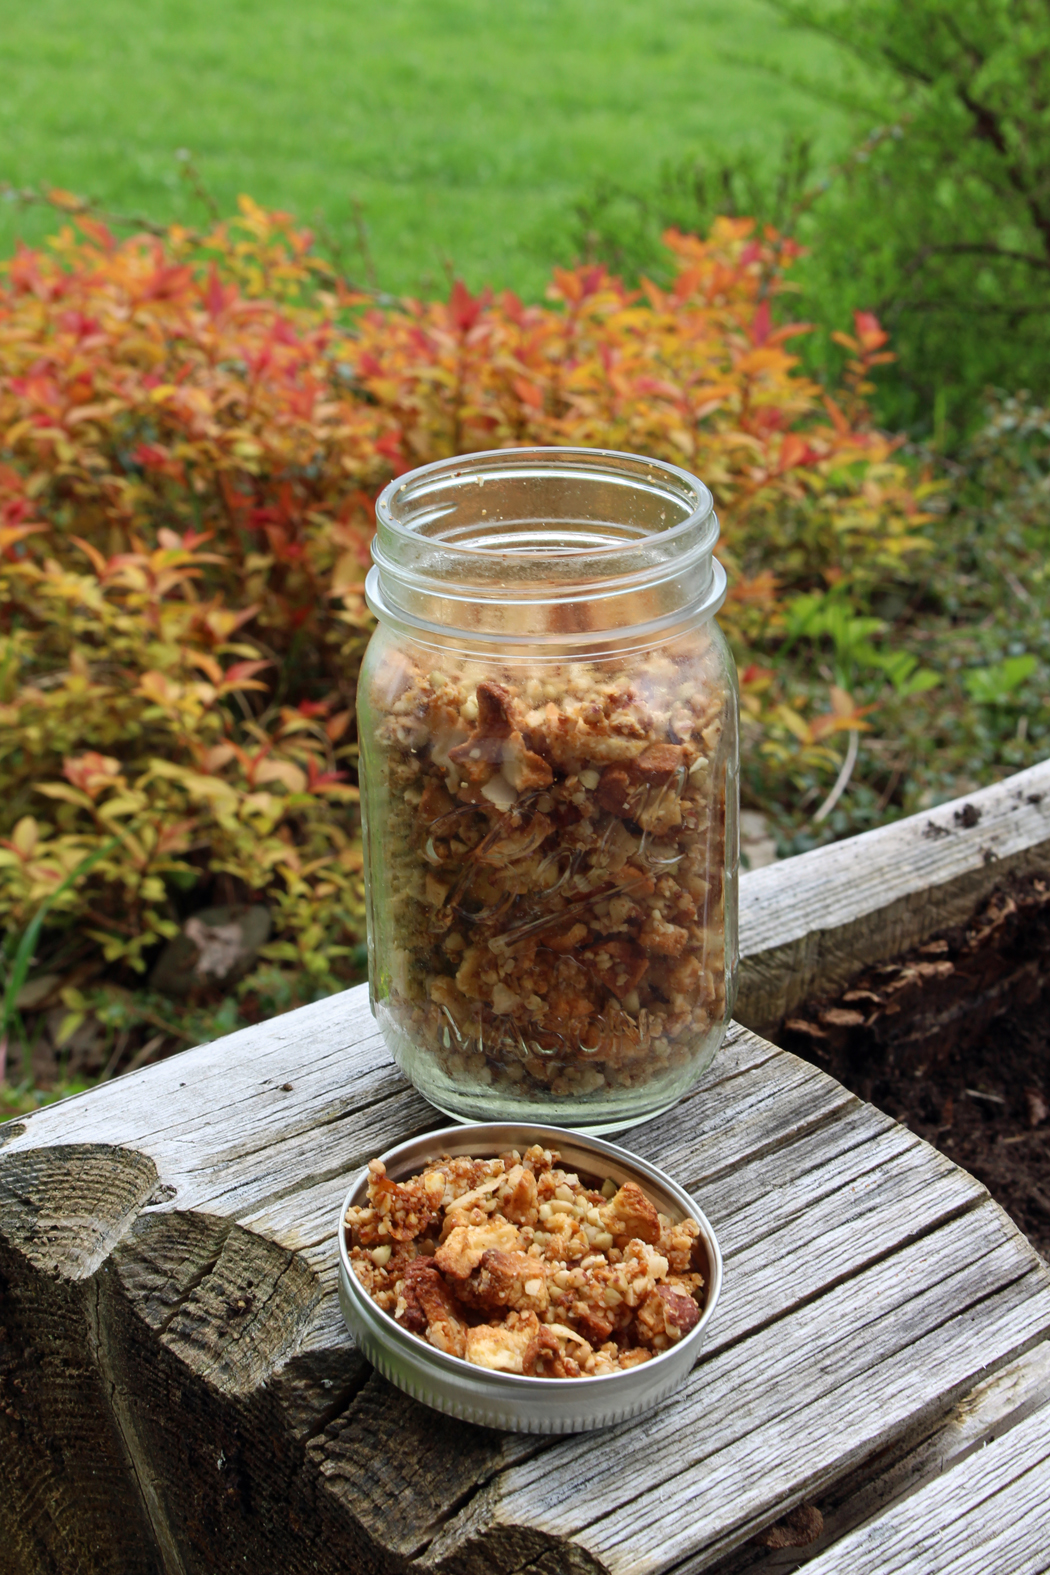 Recipe: Apple Cinnamon Buckwheat Granola (Gluten- and Sugar-Free)